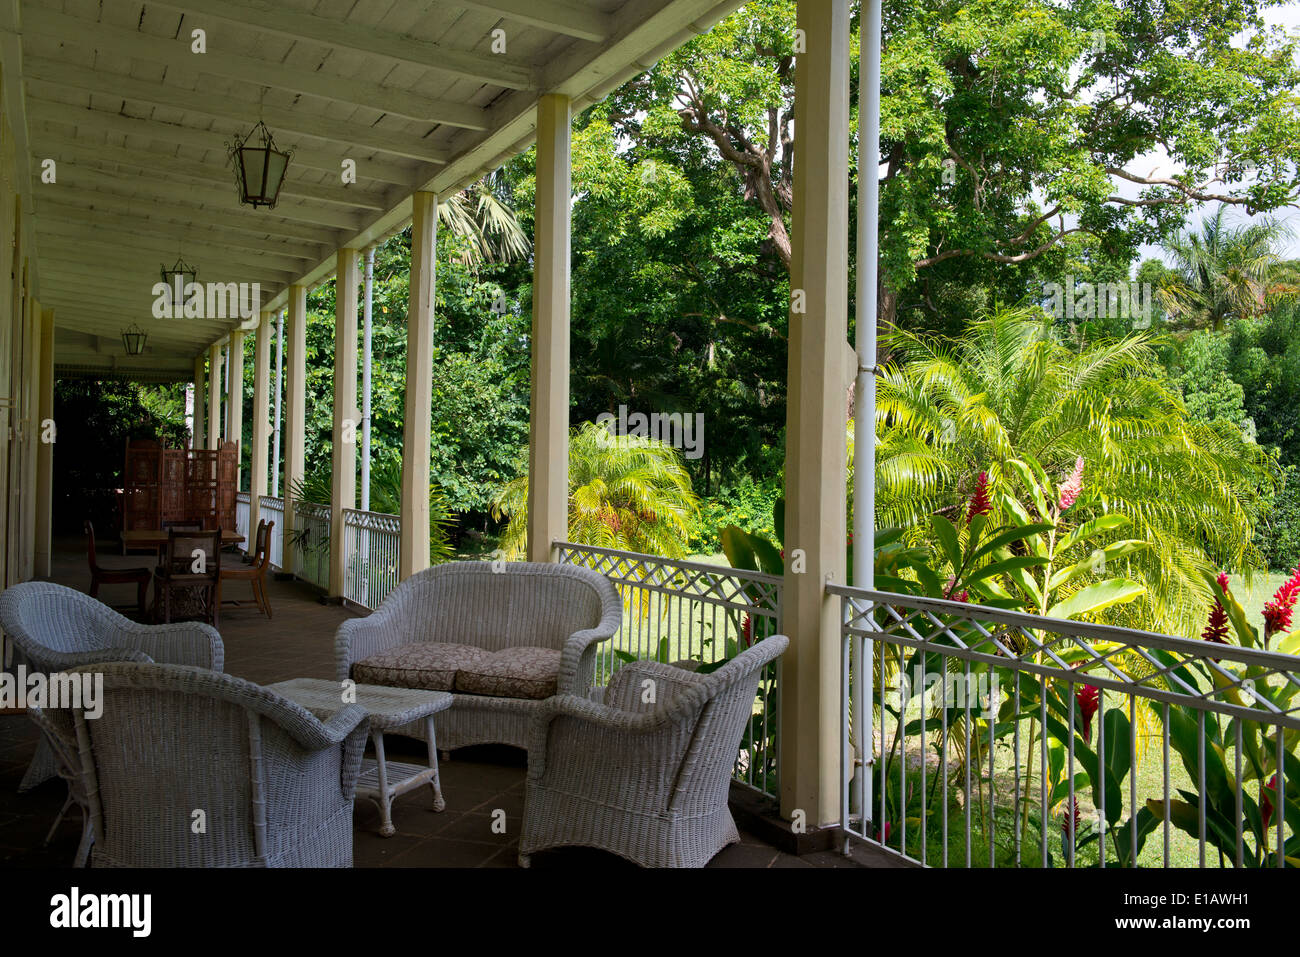 Stock Photo   Wicker Furniture On The Porch Of Eureka House, A Restored Colonial  House In Moka, Mauritius, The Indian Ocean